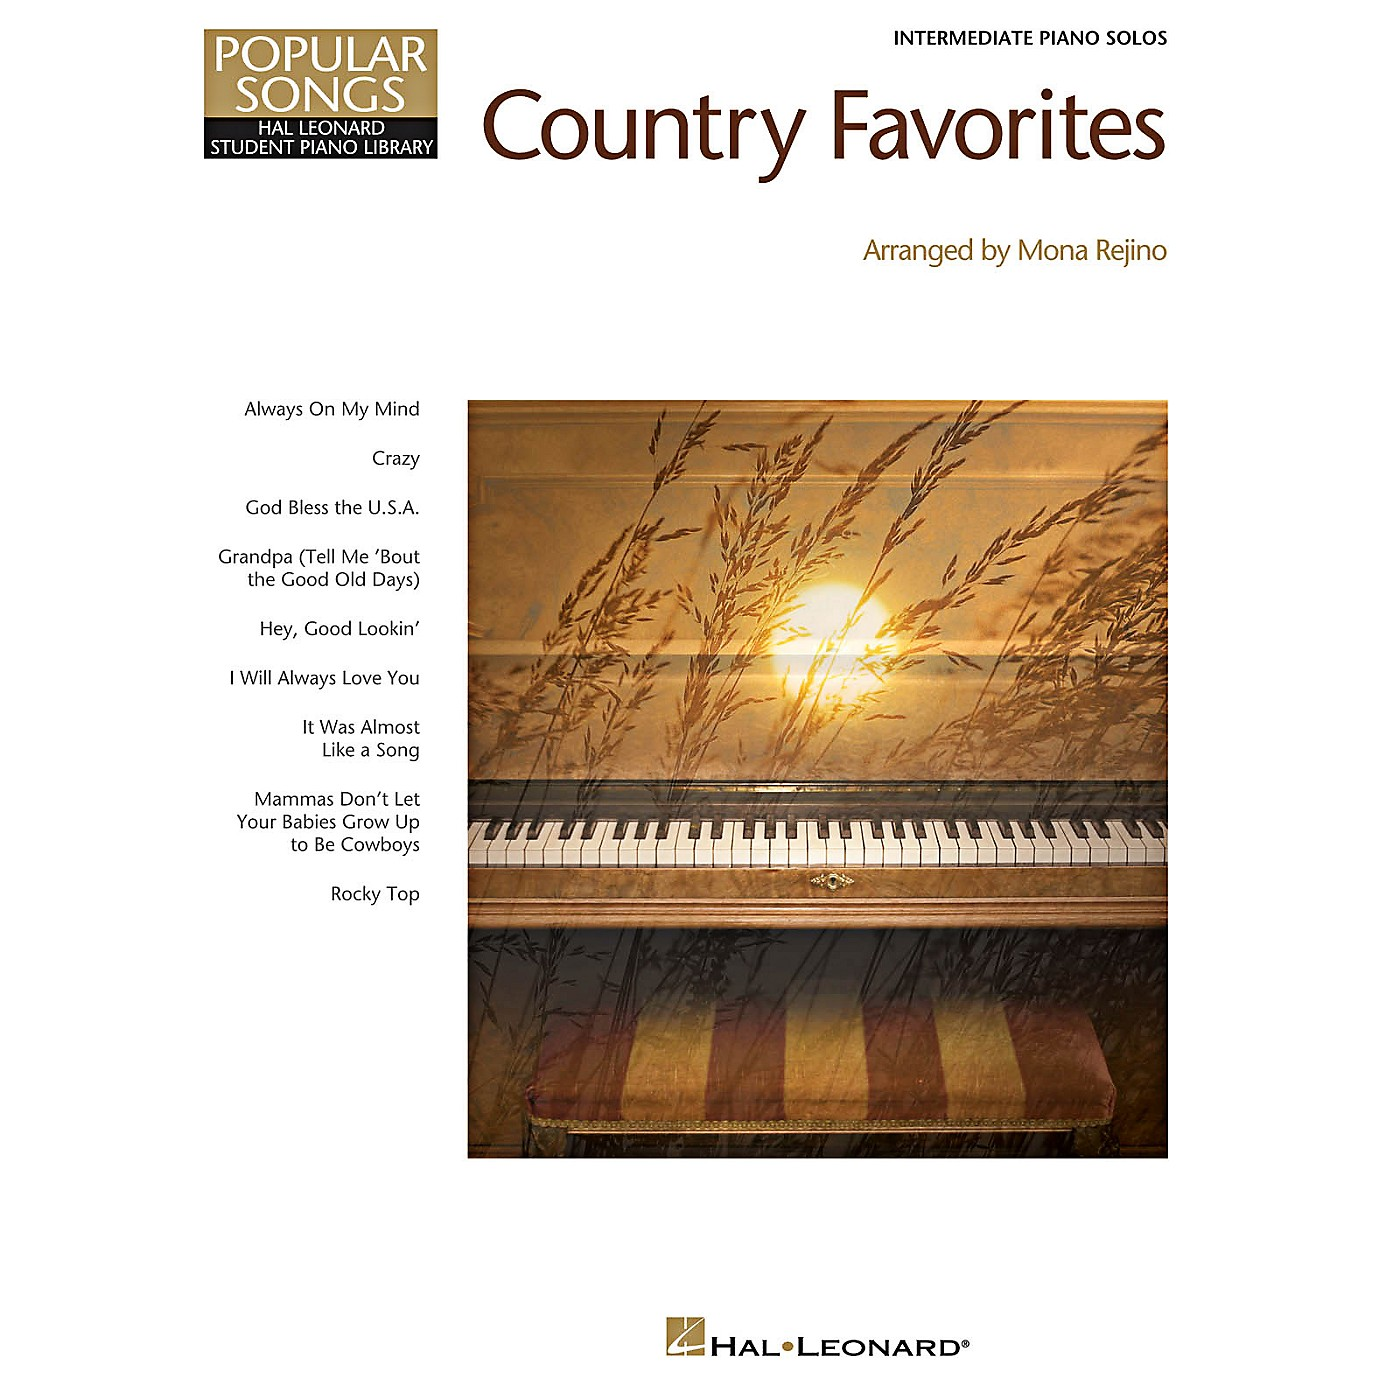 Hal Leonard Country Favorites - Hal Leonard Student Piano Library Popular Songs Series for Intermediate Level Piano thumbnail